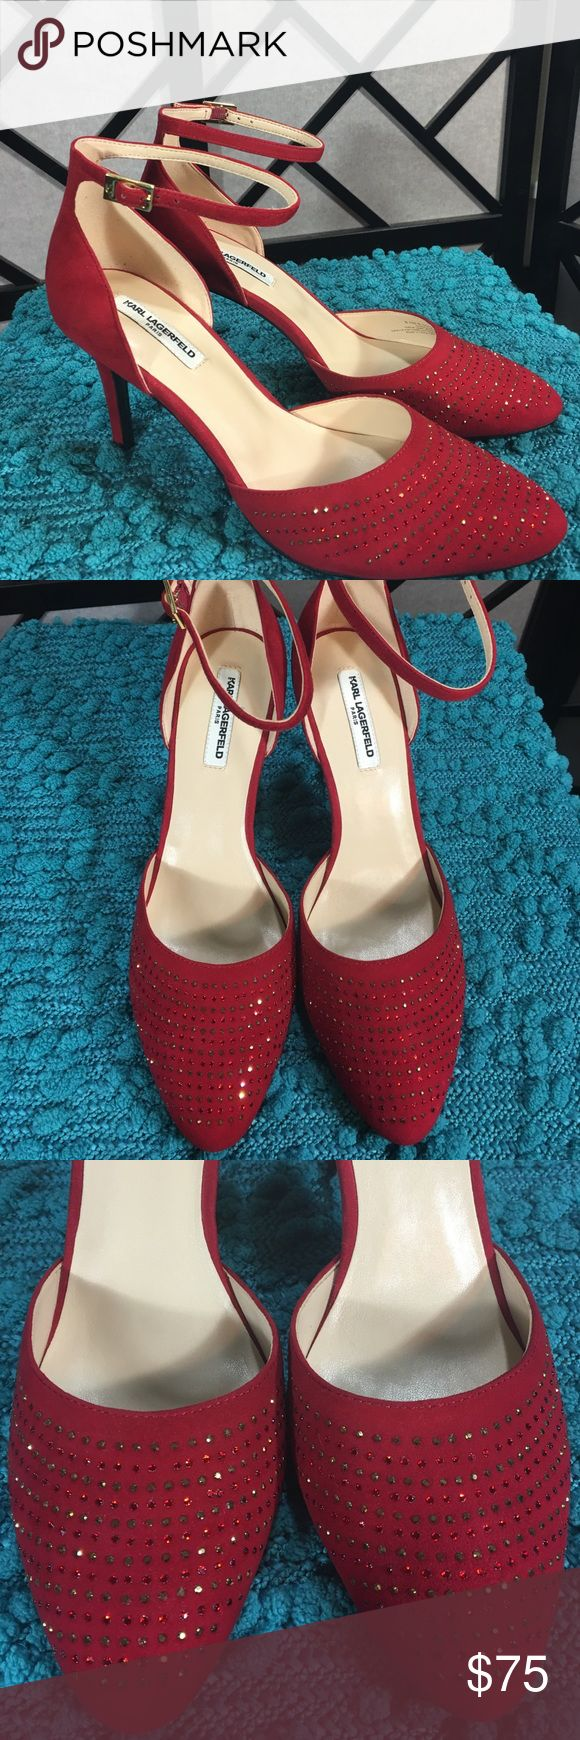 Karl Lagerfeld Red Suede Heels 👠 Ankle Straps New Stunning red suede heels with embellishments that are sparkly! 3.5 inch heels! Karl Lagerfeld Shoes Heels